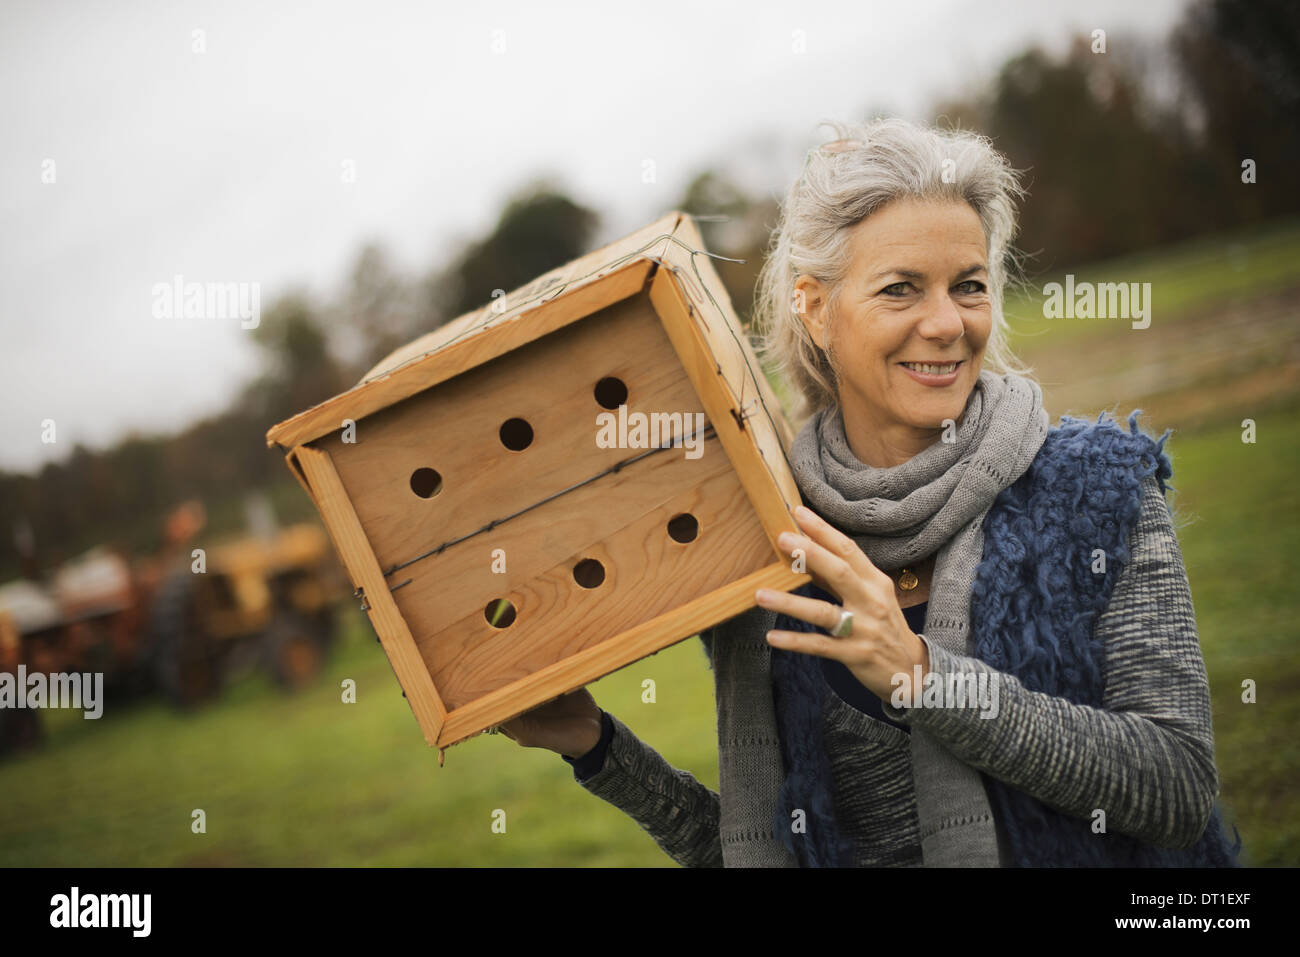 Organic Farmer at Work A woman holding a bug box a wooden box with holes for insects to nest in - Stock Image